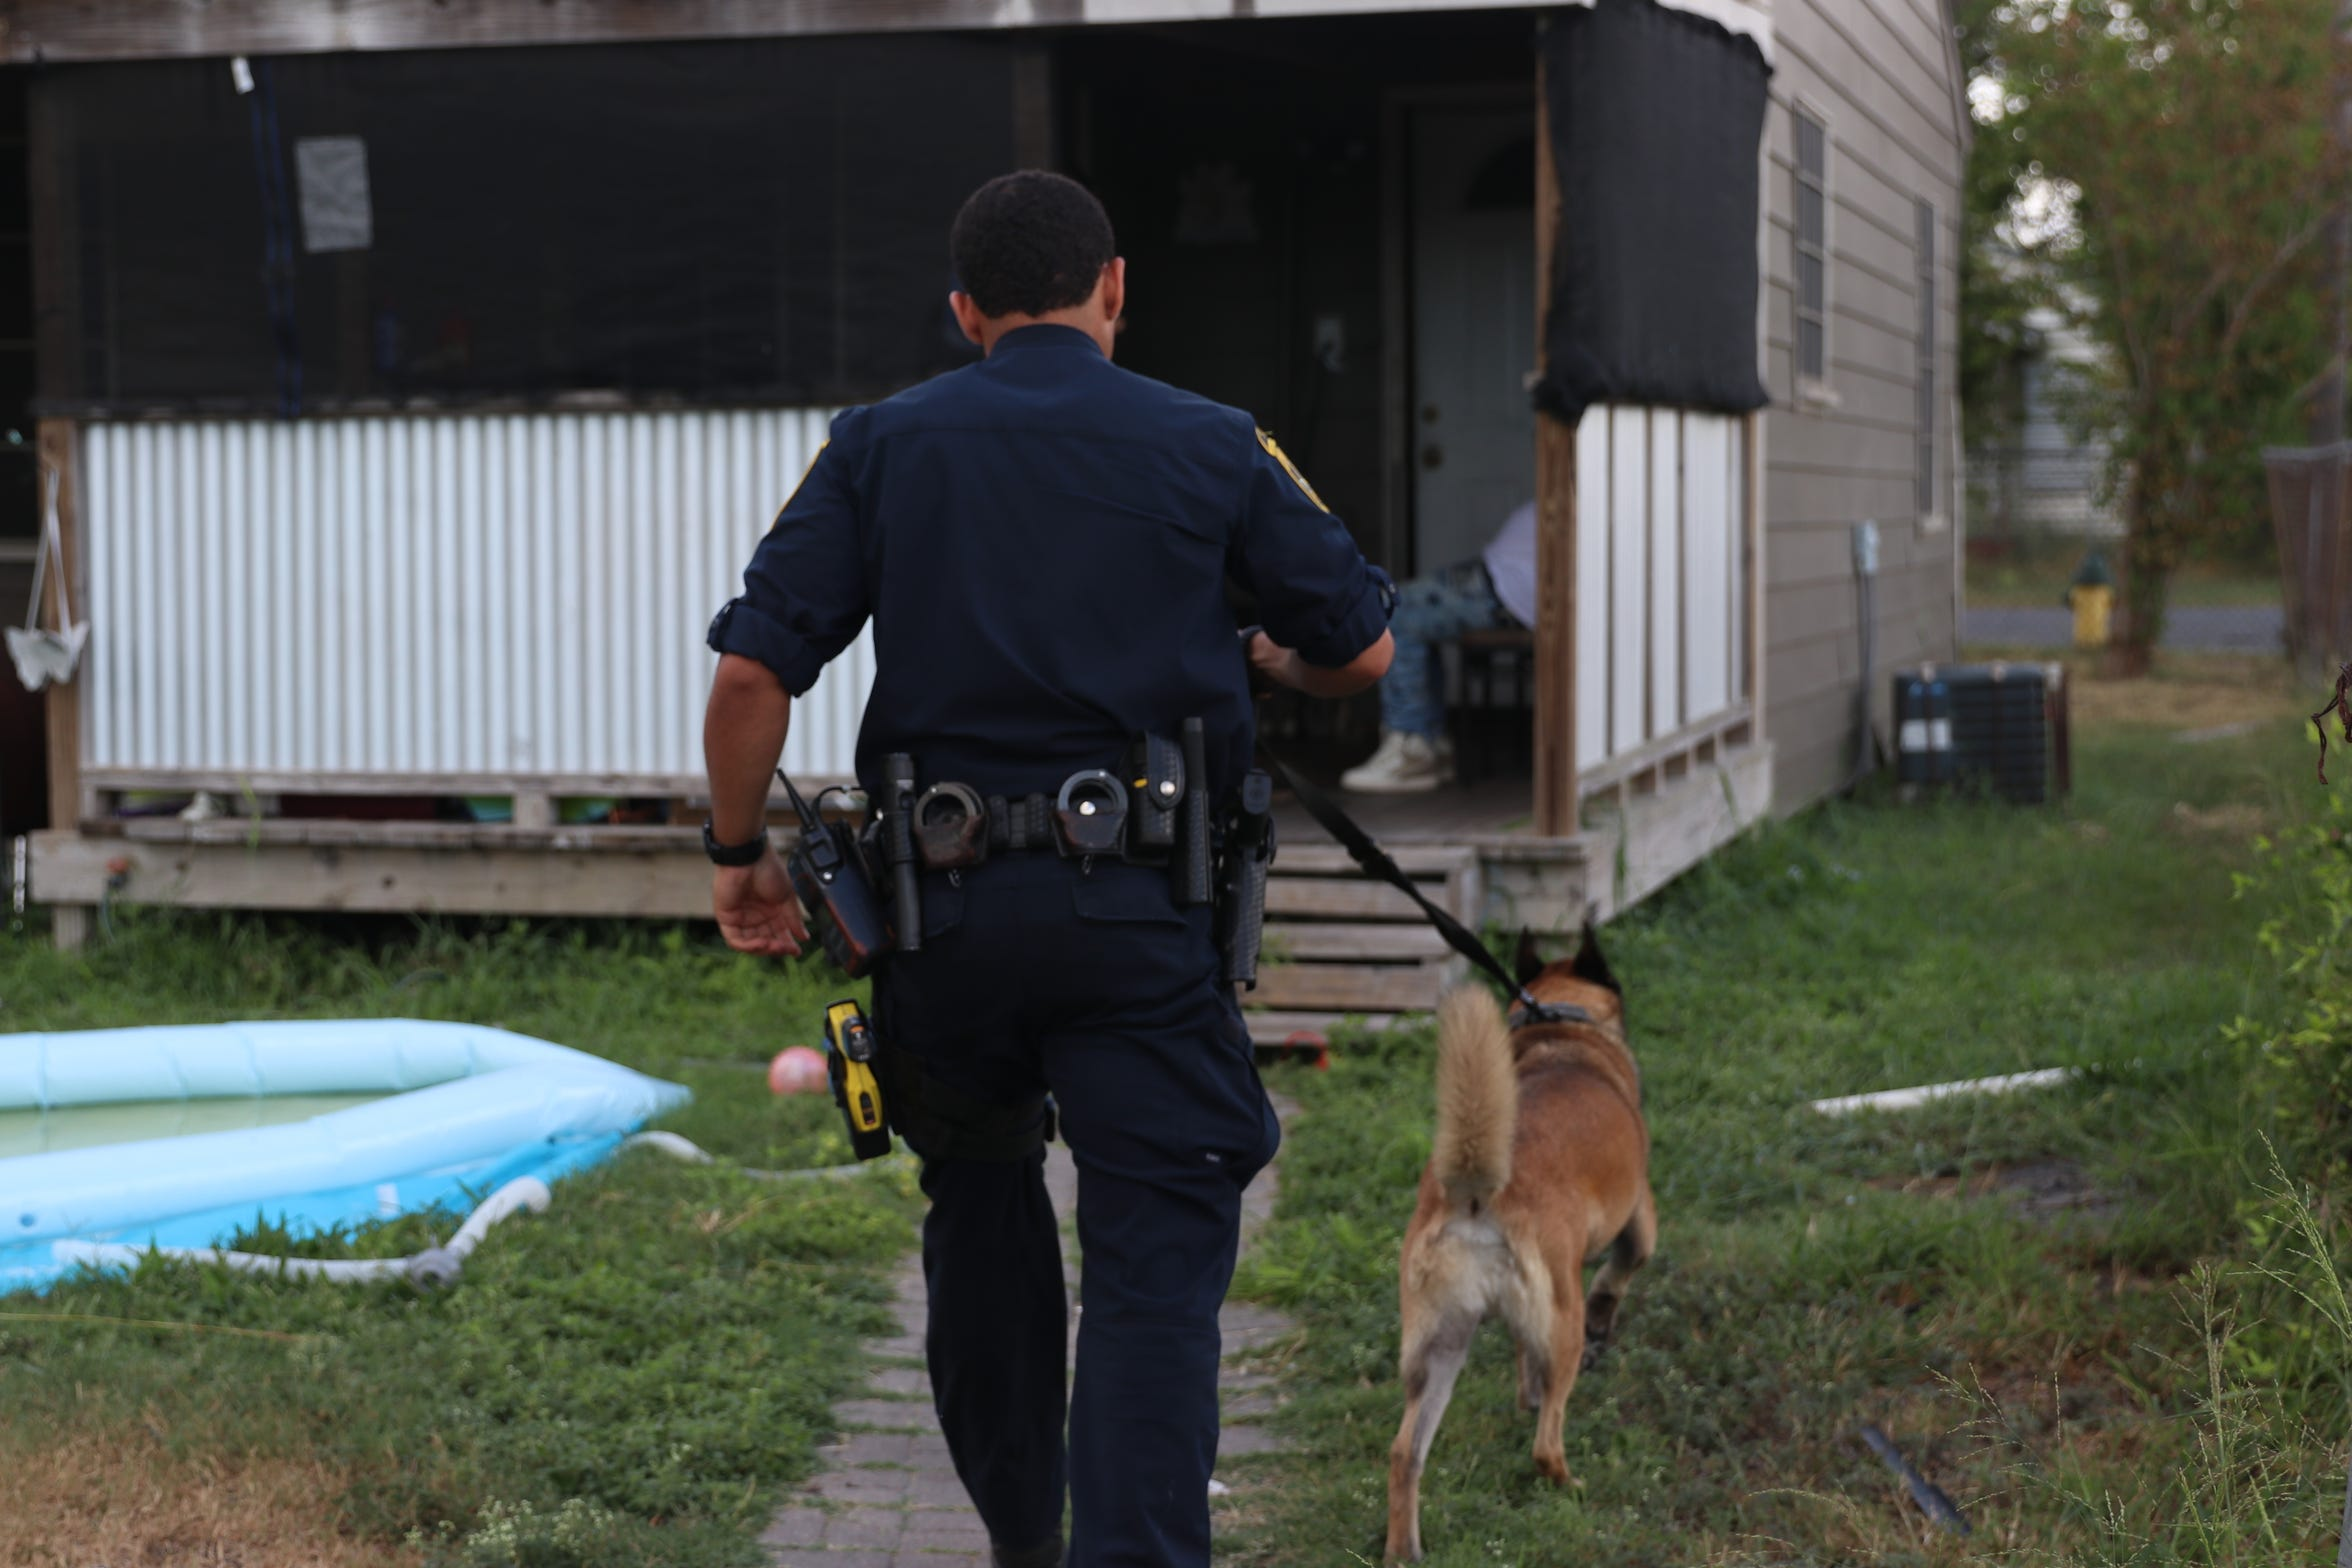 Corpus Christi police during a heroin-related warrant round-up on August 31, 2018.